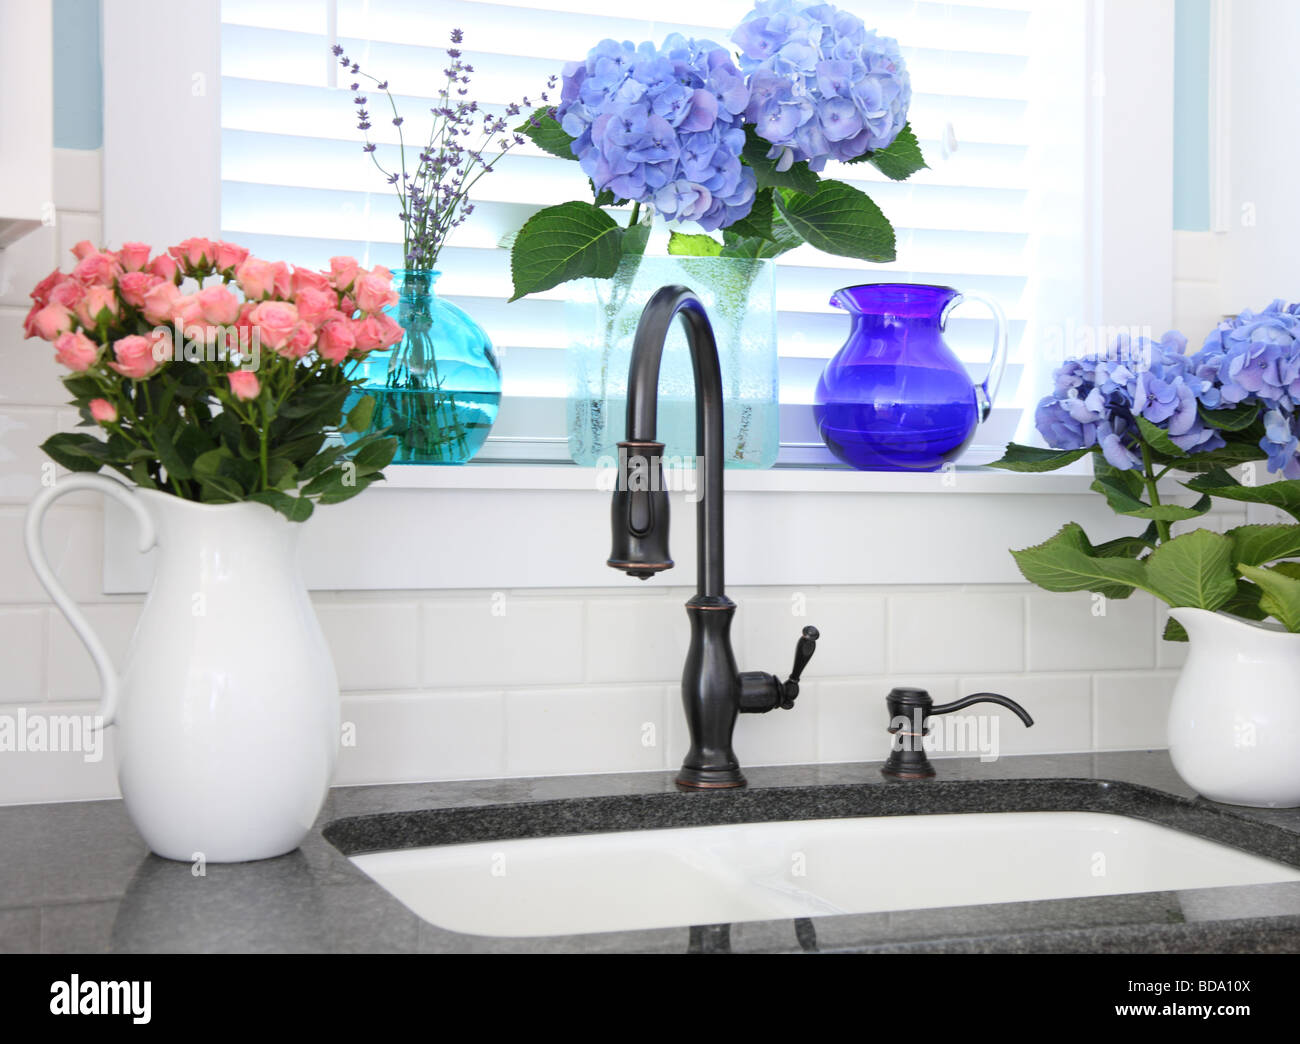 Kitchen sink with flowers - Stock Image